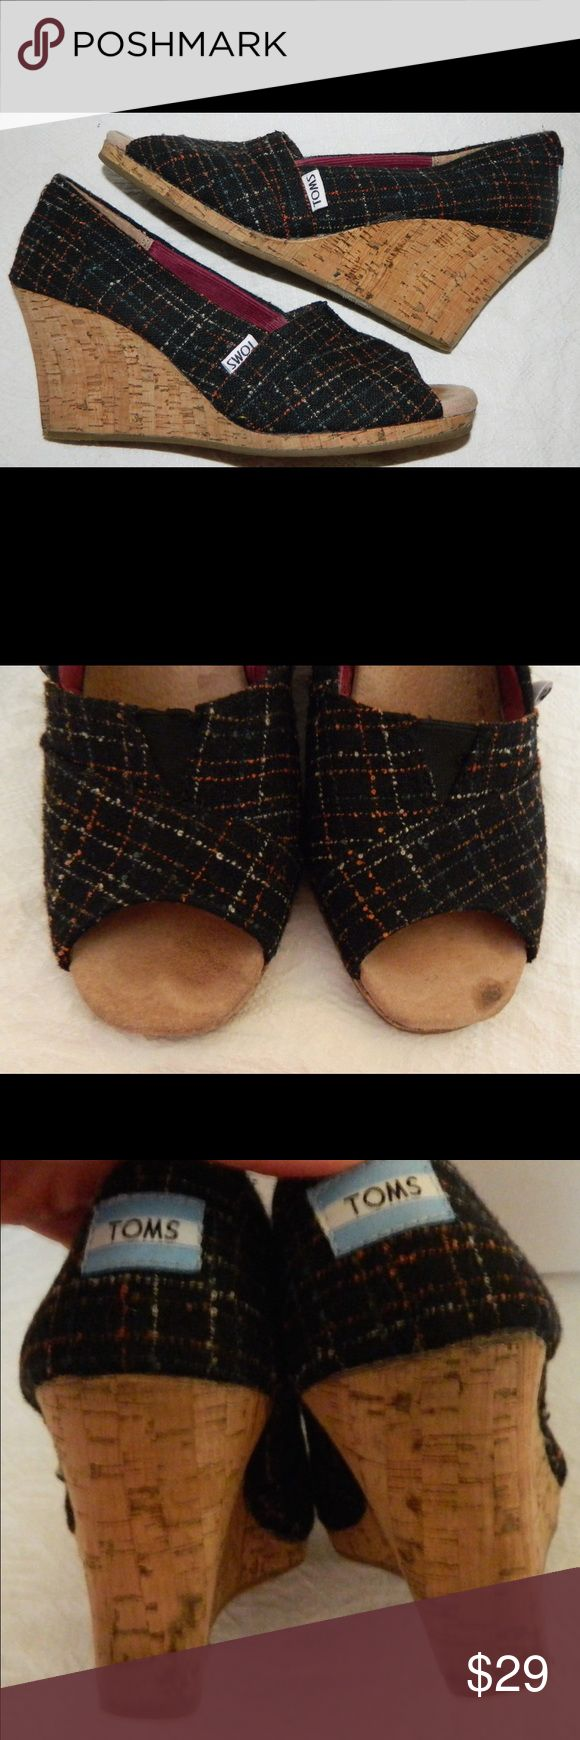 TOMS Espadrilles PEEP TOE Tweed PLAID BLACK Wedges With a little bit of wear on toe and heels. TOMS Shoes Espadrilles